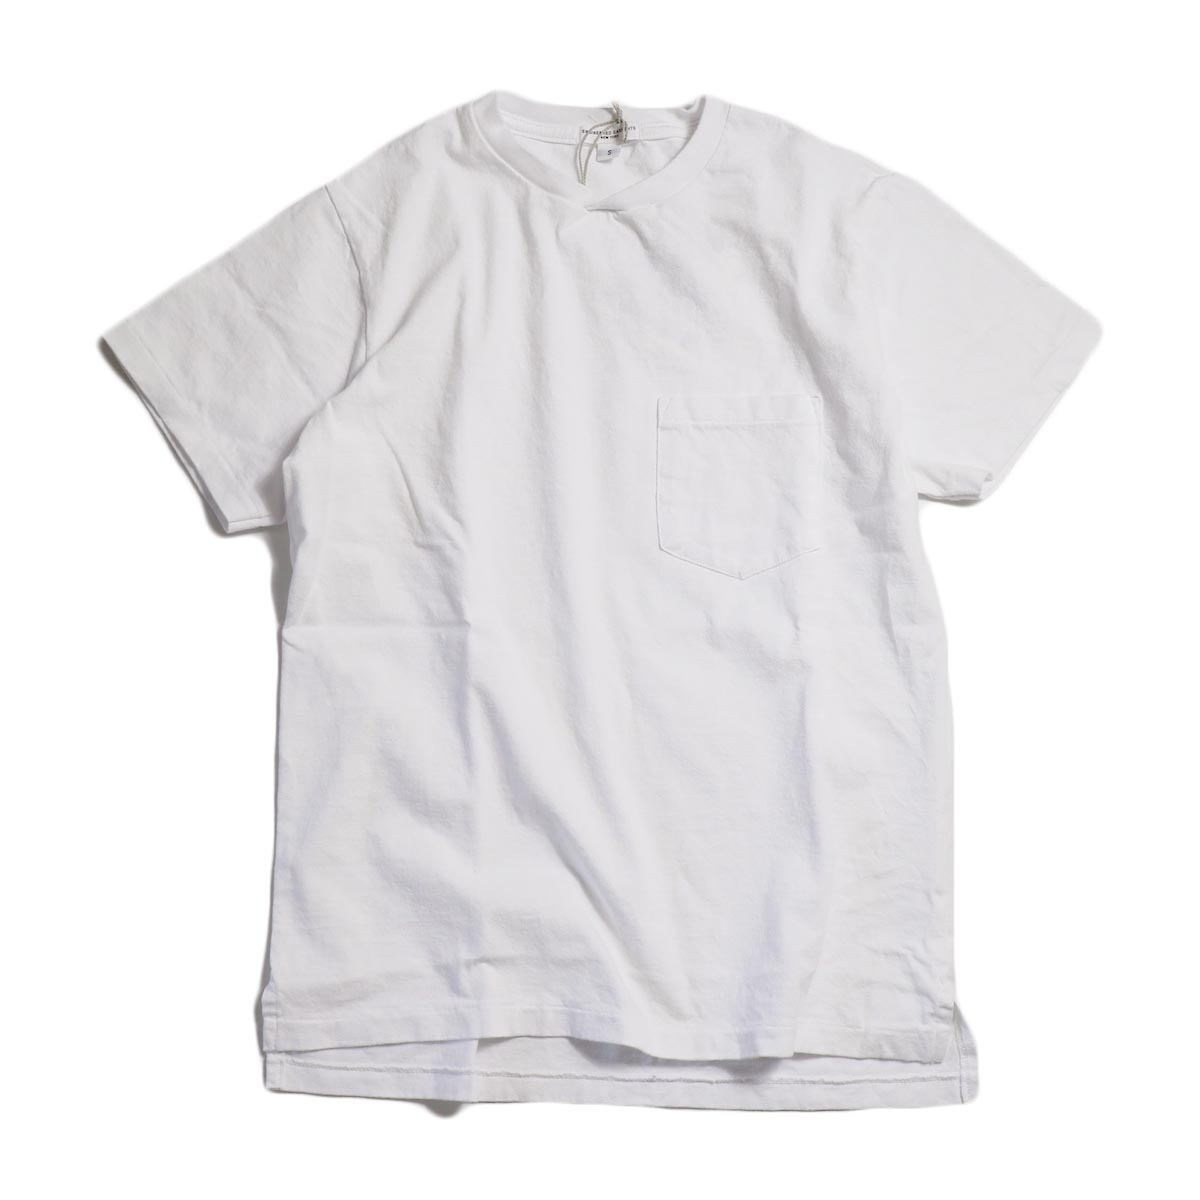 "ENGINEERED GARMENTS WORKADAY / ""Crossover Neck Pocket Tee"" -White"